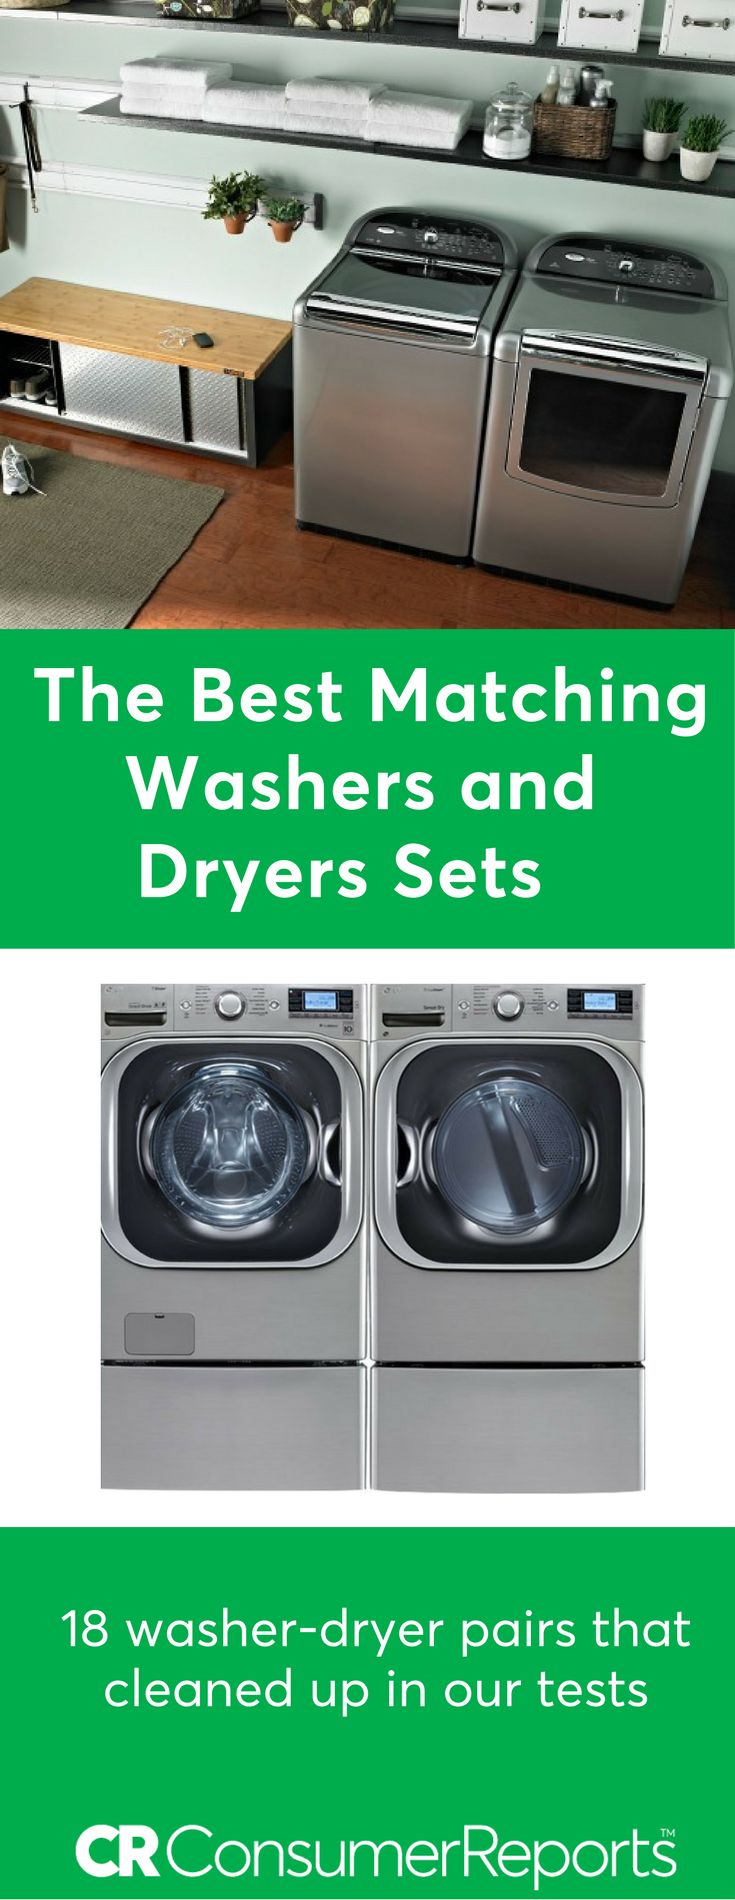 75 best Laundry Tips and Tricks images on Pinterest | Consumer ...